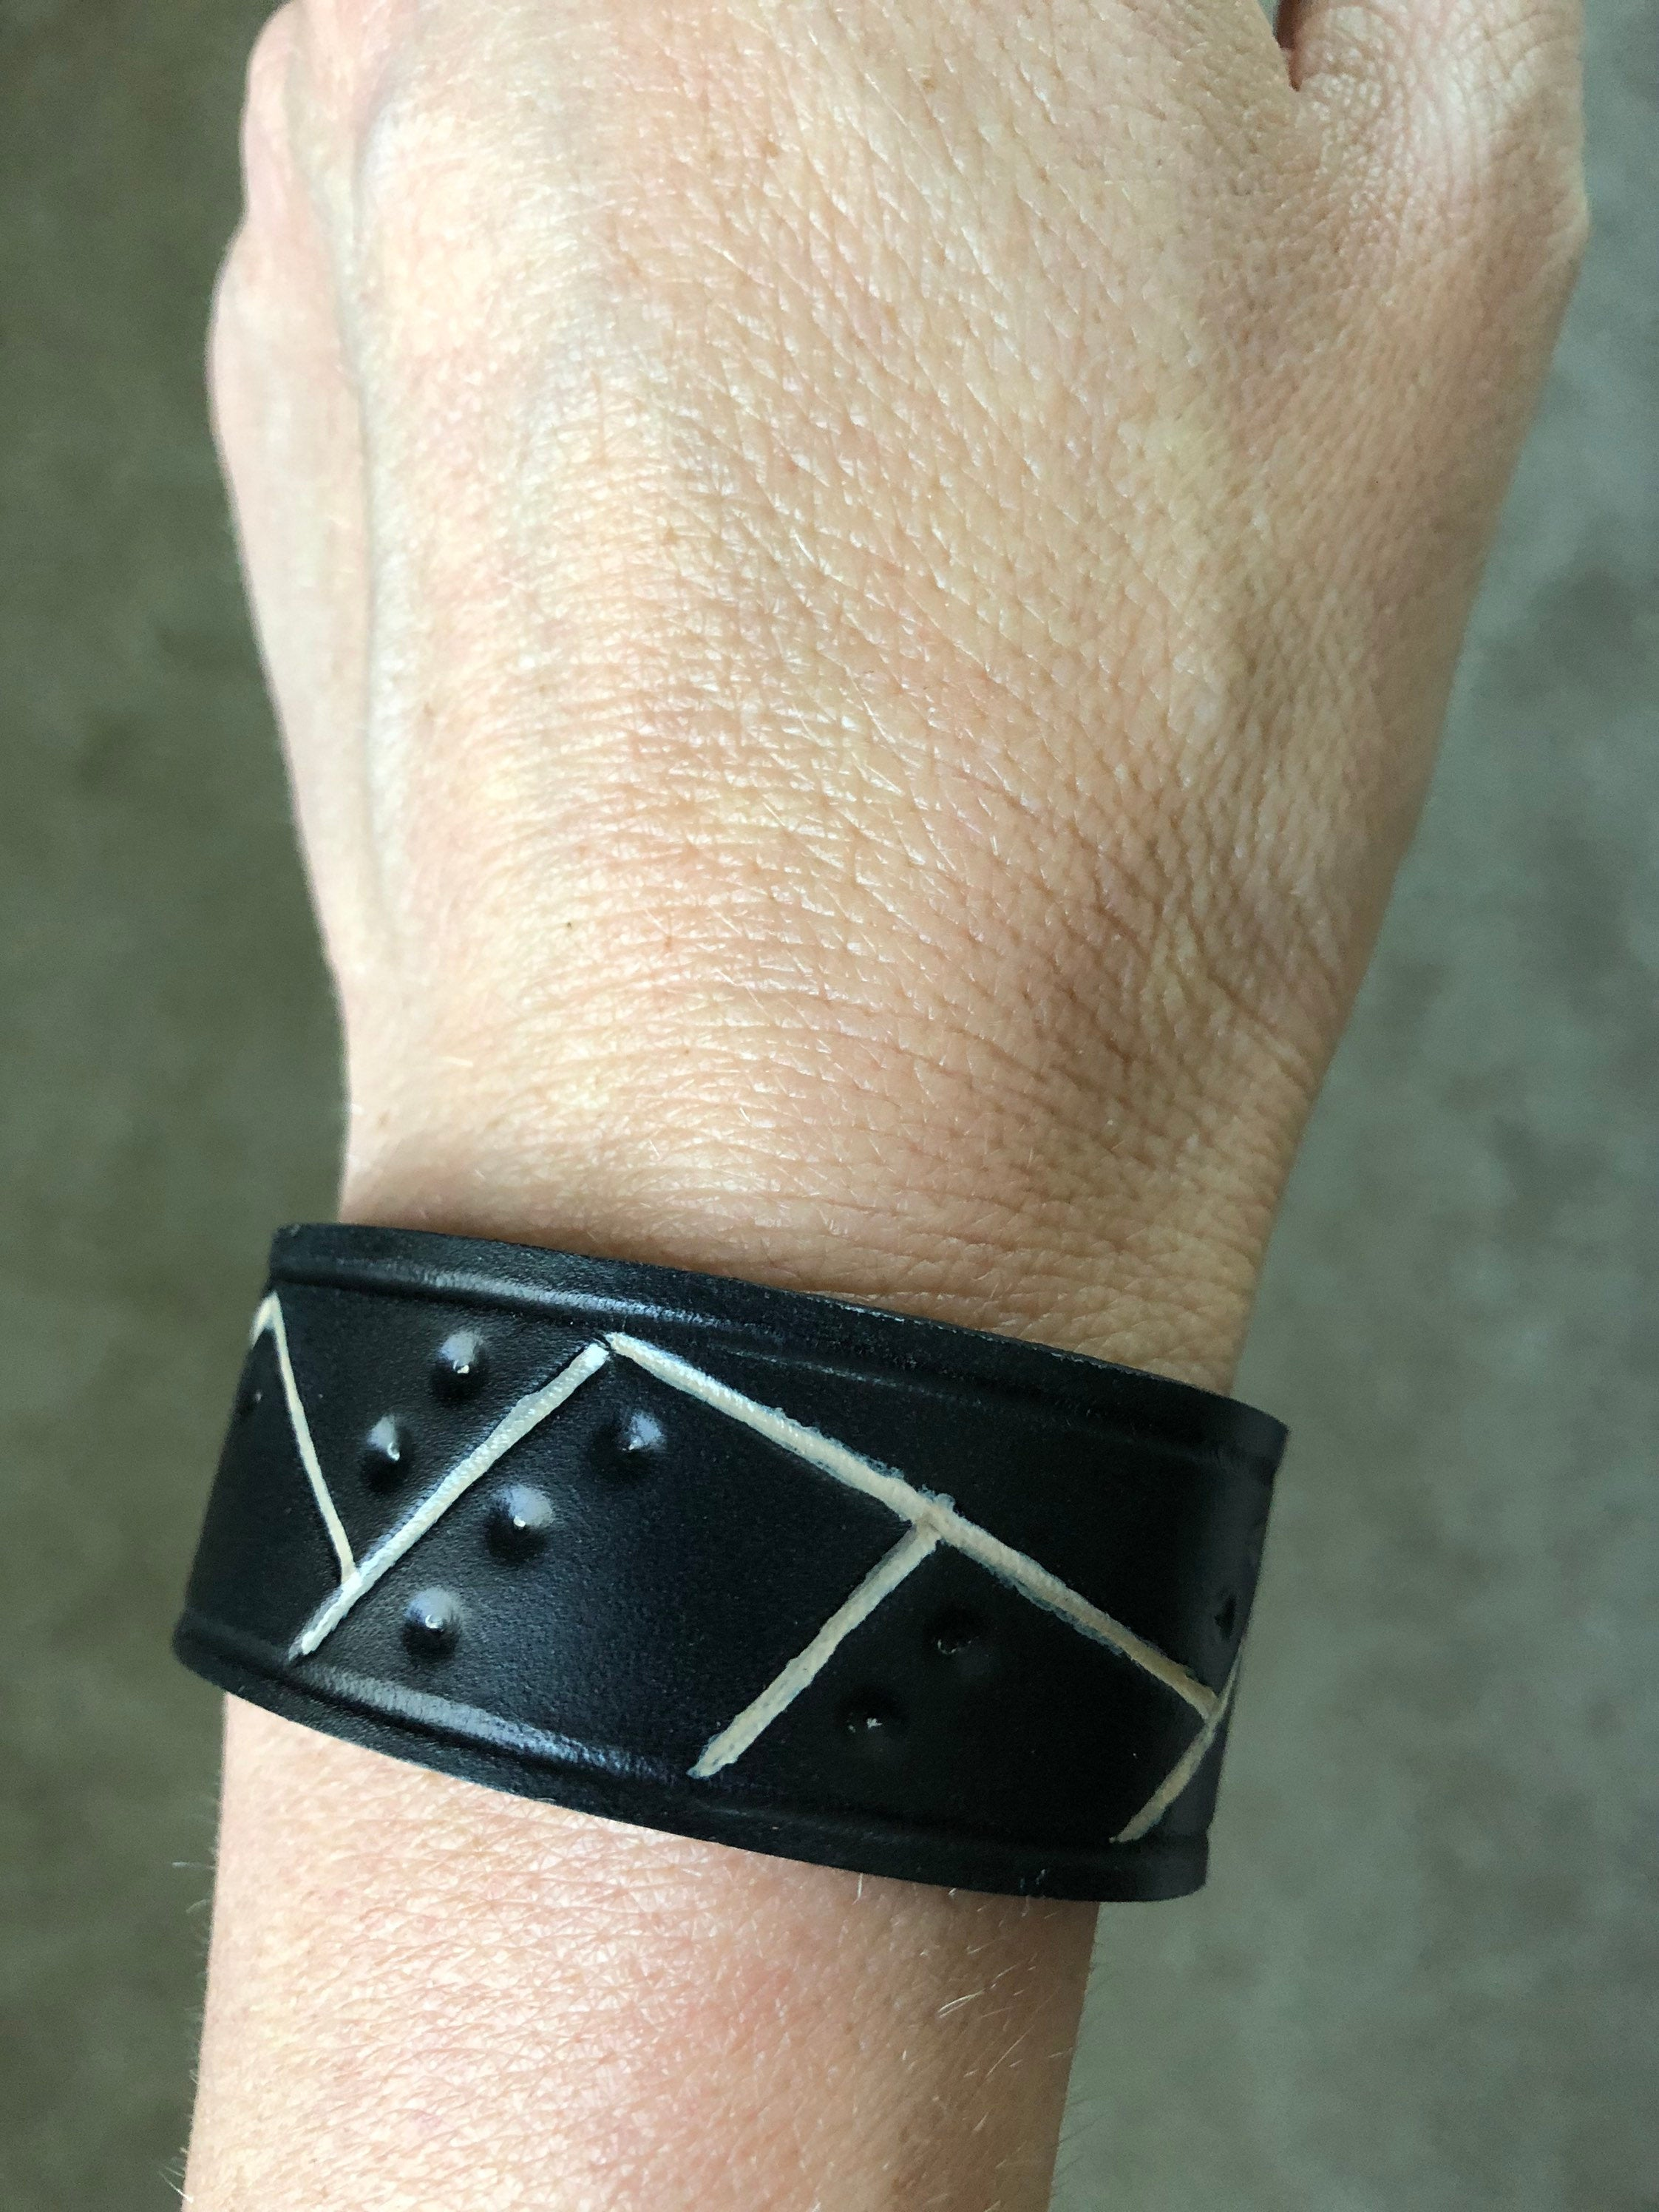 Black leather cuff with tooled design and cream design shown on wrist